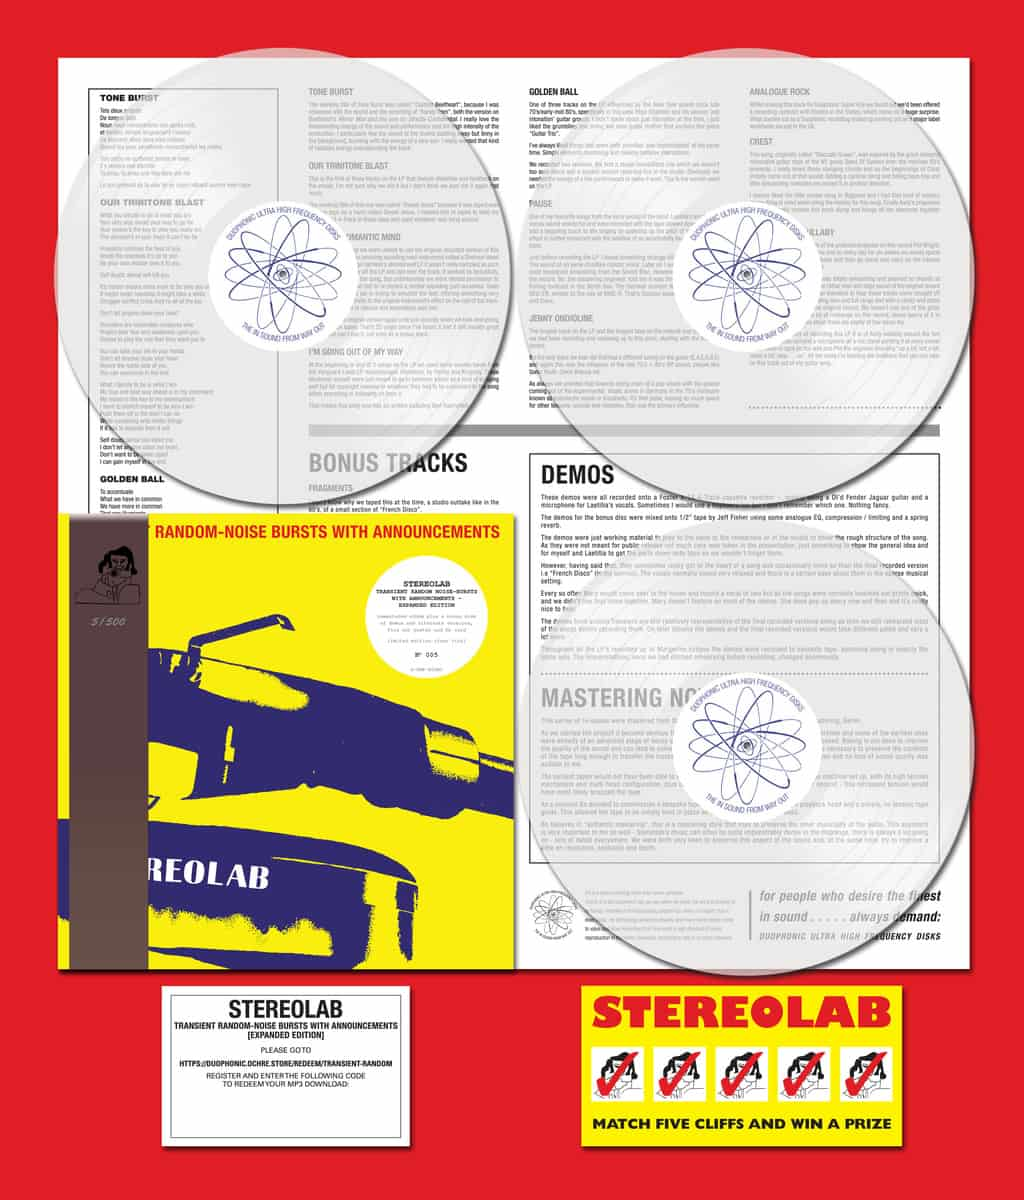 Stereolab Transient Random Noise Bursts With